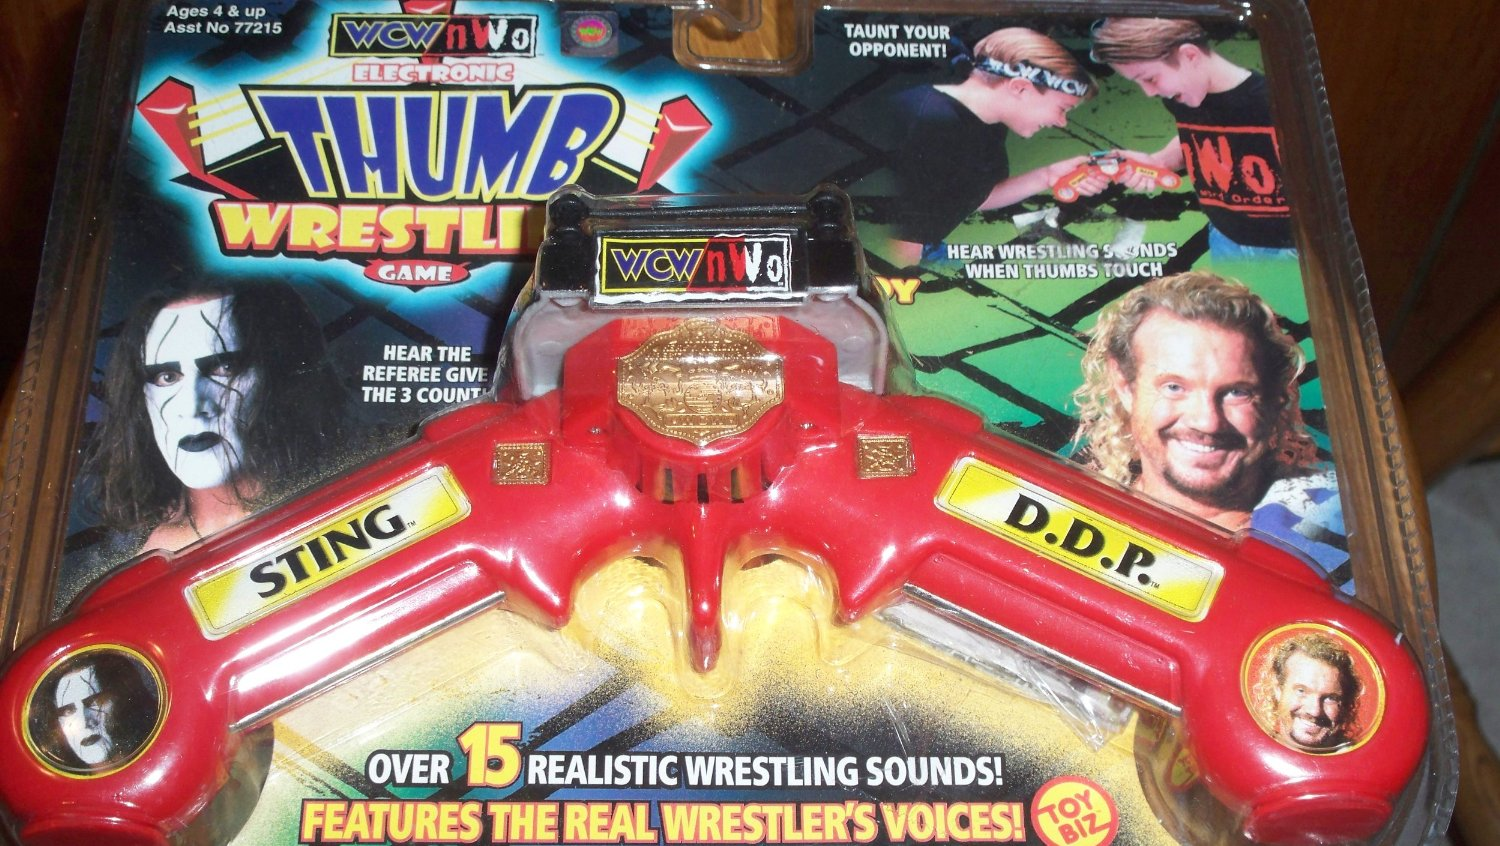 Someone Bought This: Lots of WCW and WWE Thumb Wrestling